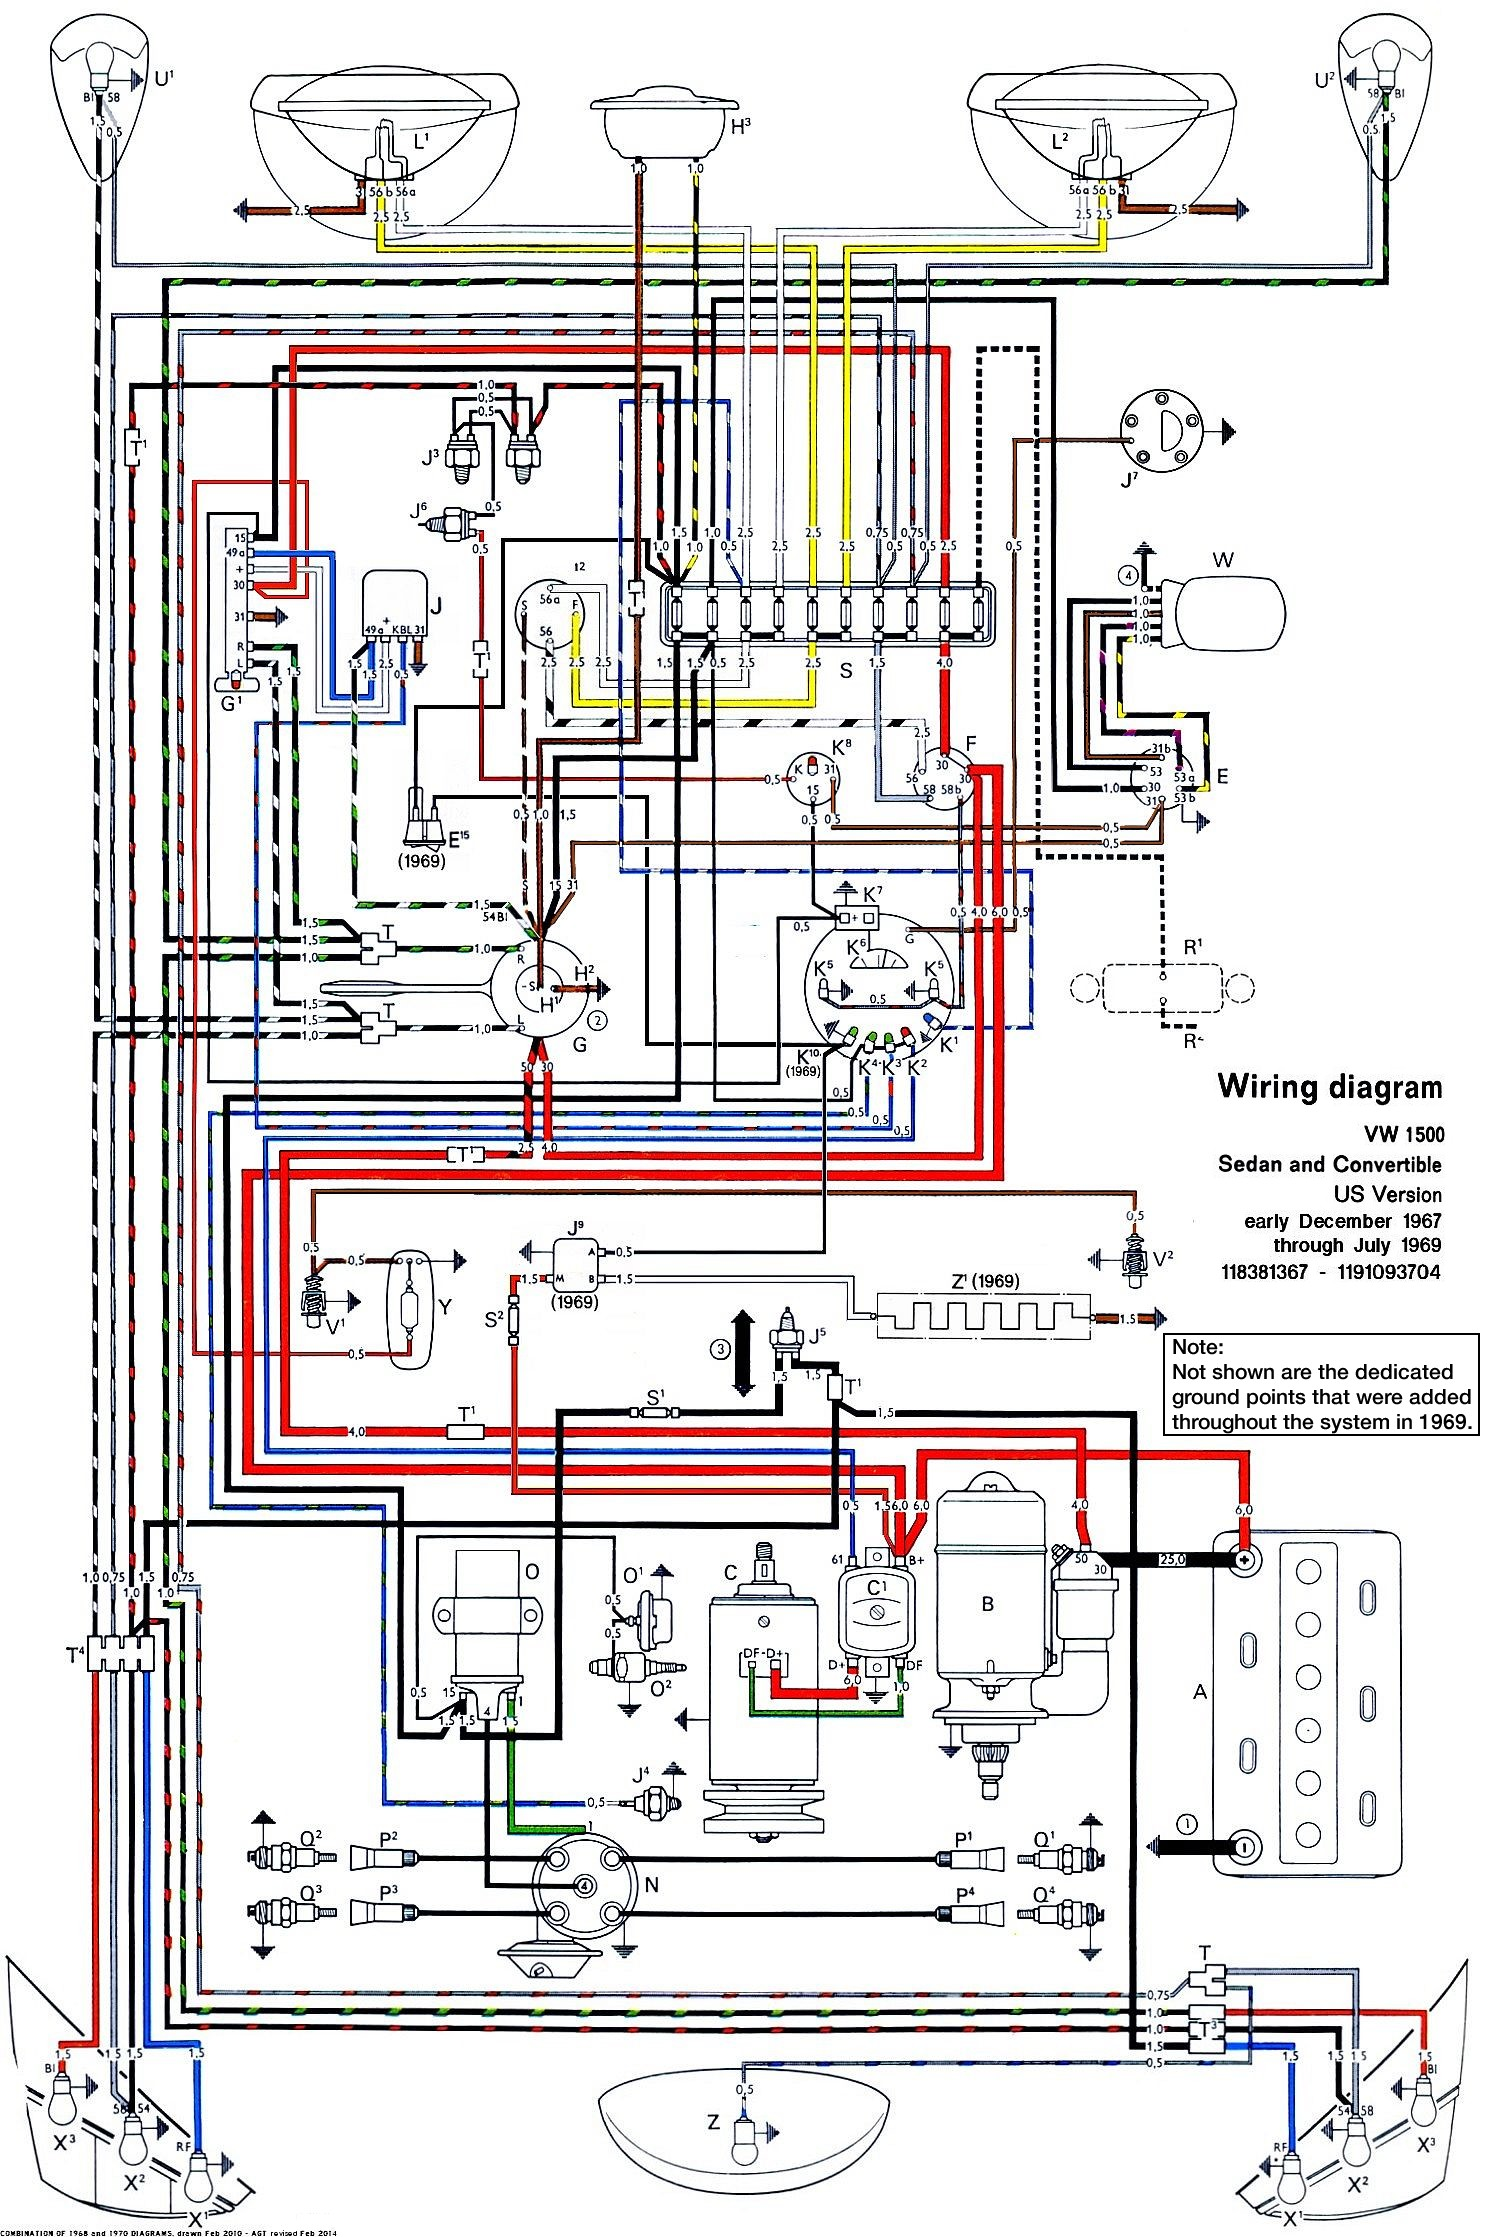 1969 beetle wiring diagram auto electrical wiring diagram need a simple wiring diagram for turn signals on a 69 beetle the rh socalautoparts com 1969 vw beetle headlight switch wiring diagram 1969 vw beetle voltage asfbconference2016 Gallery